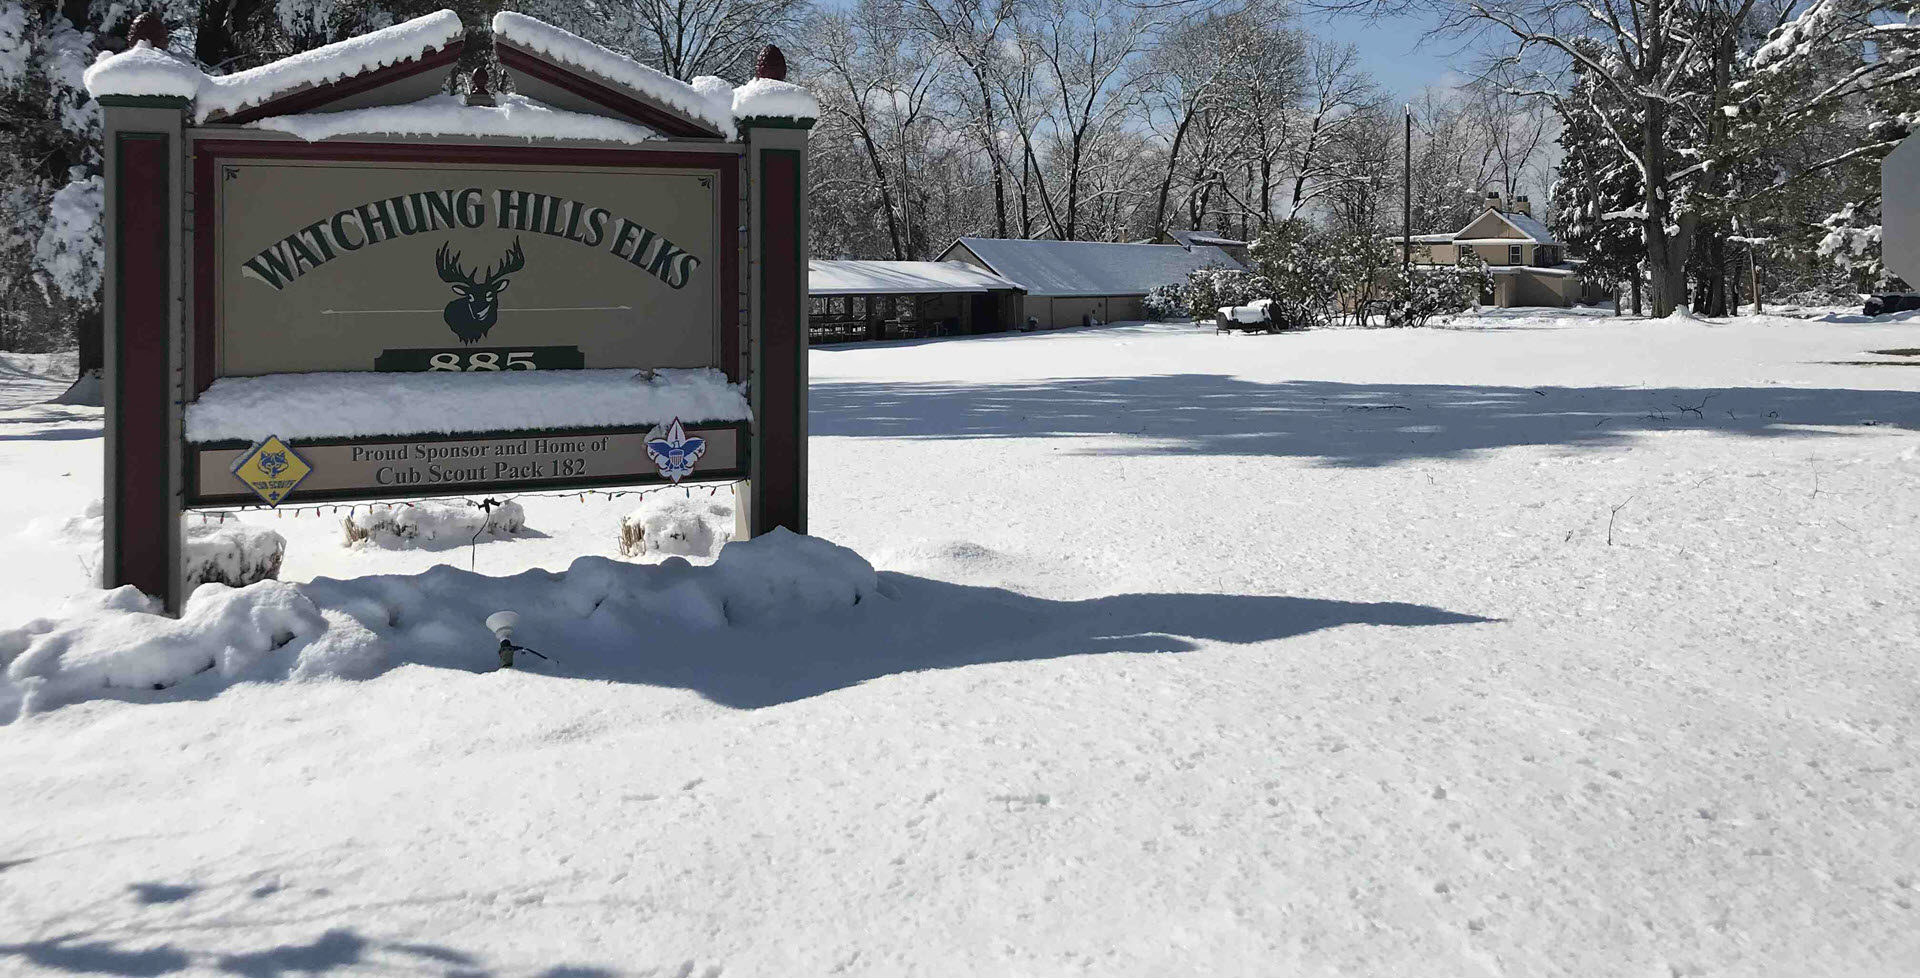 Watchung Hills Elks Lodge 885 in Snow